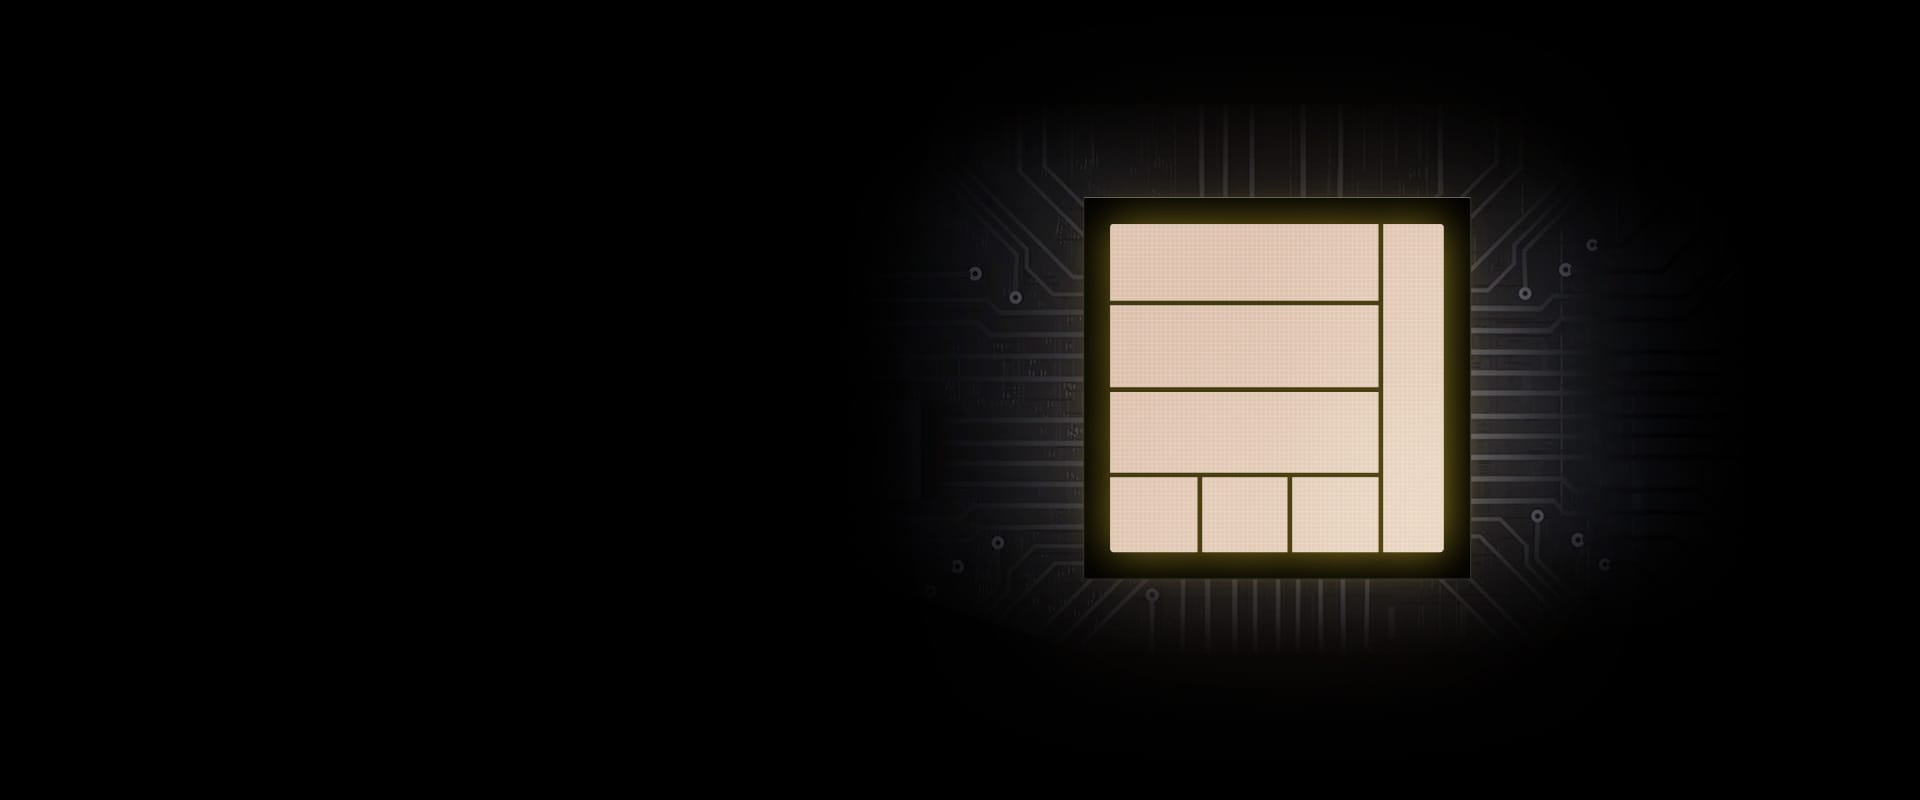 Description: An illustration of a chip providing powerful performance to Galaxy S20 FE.